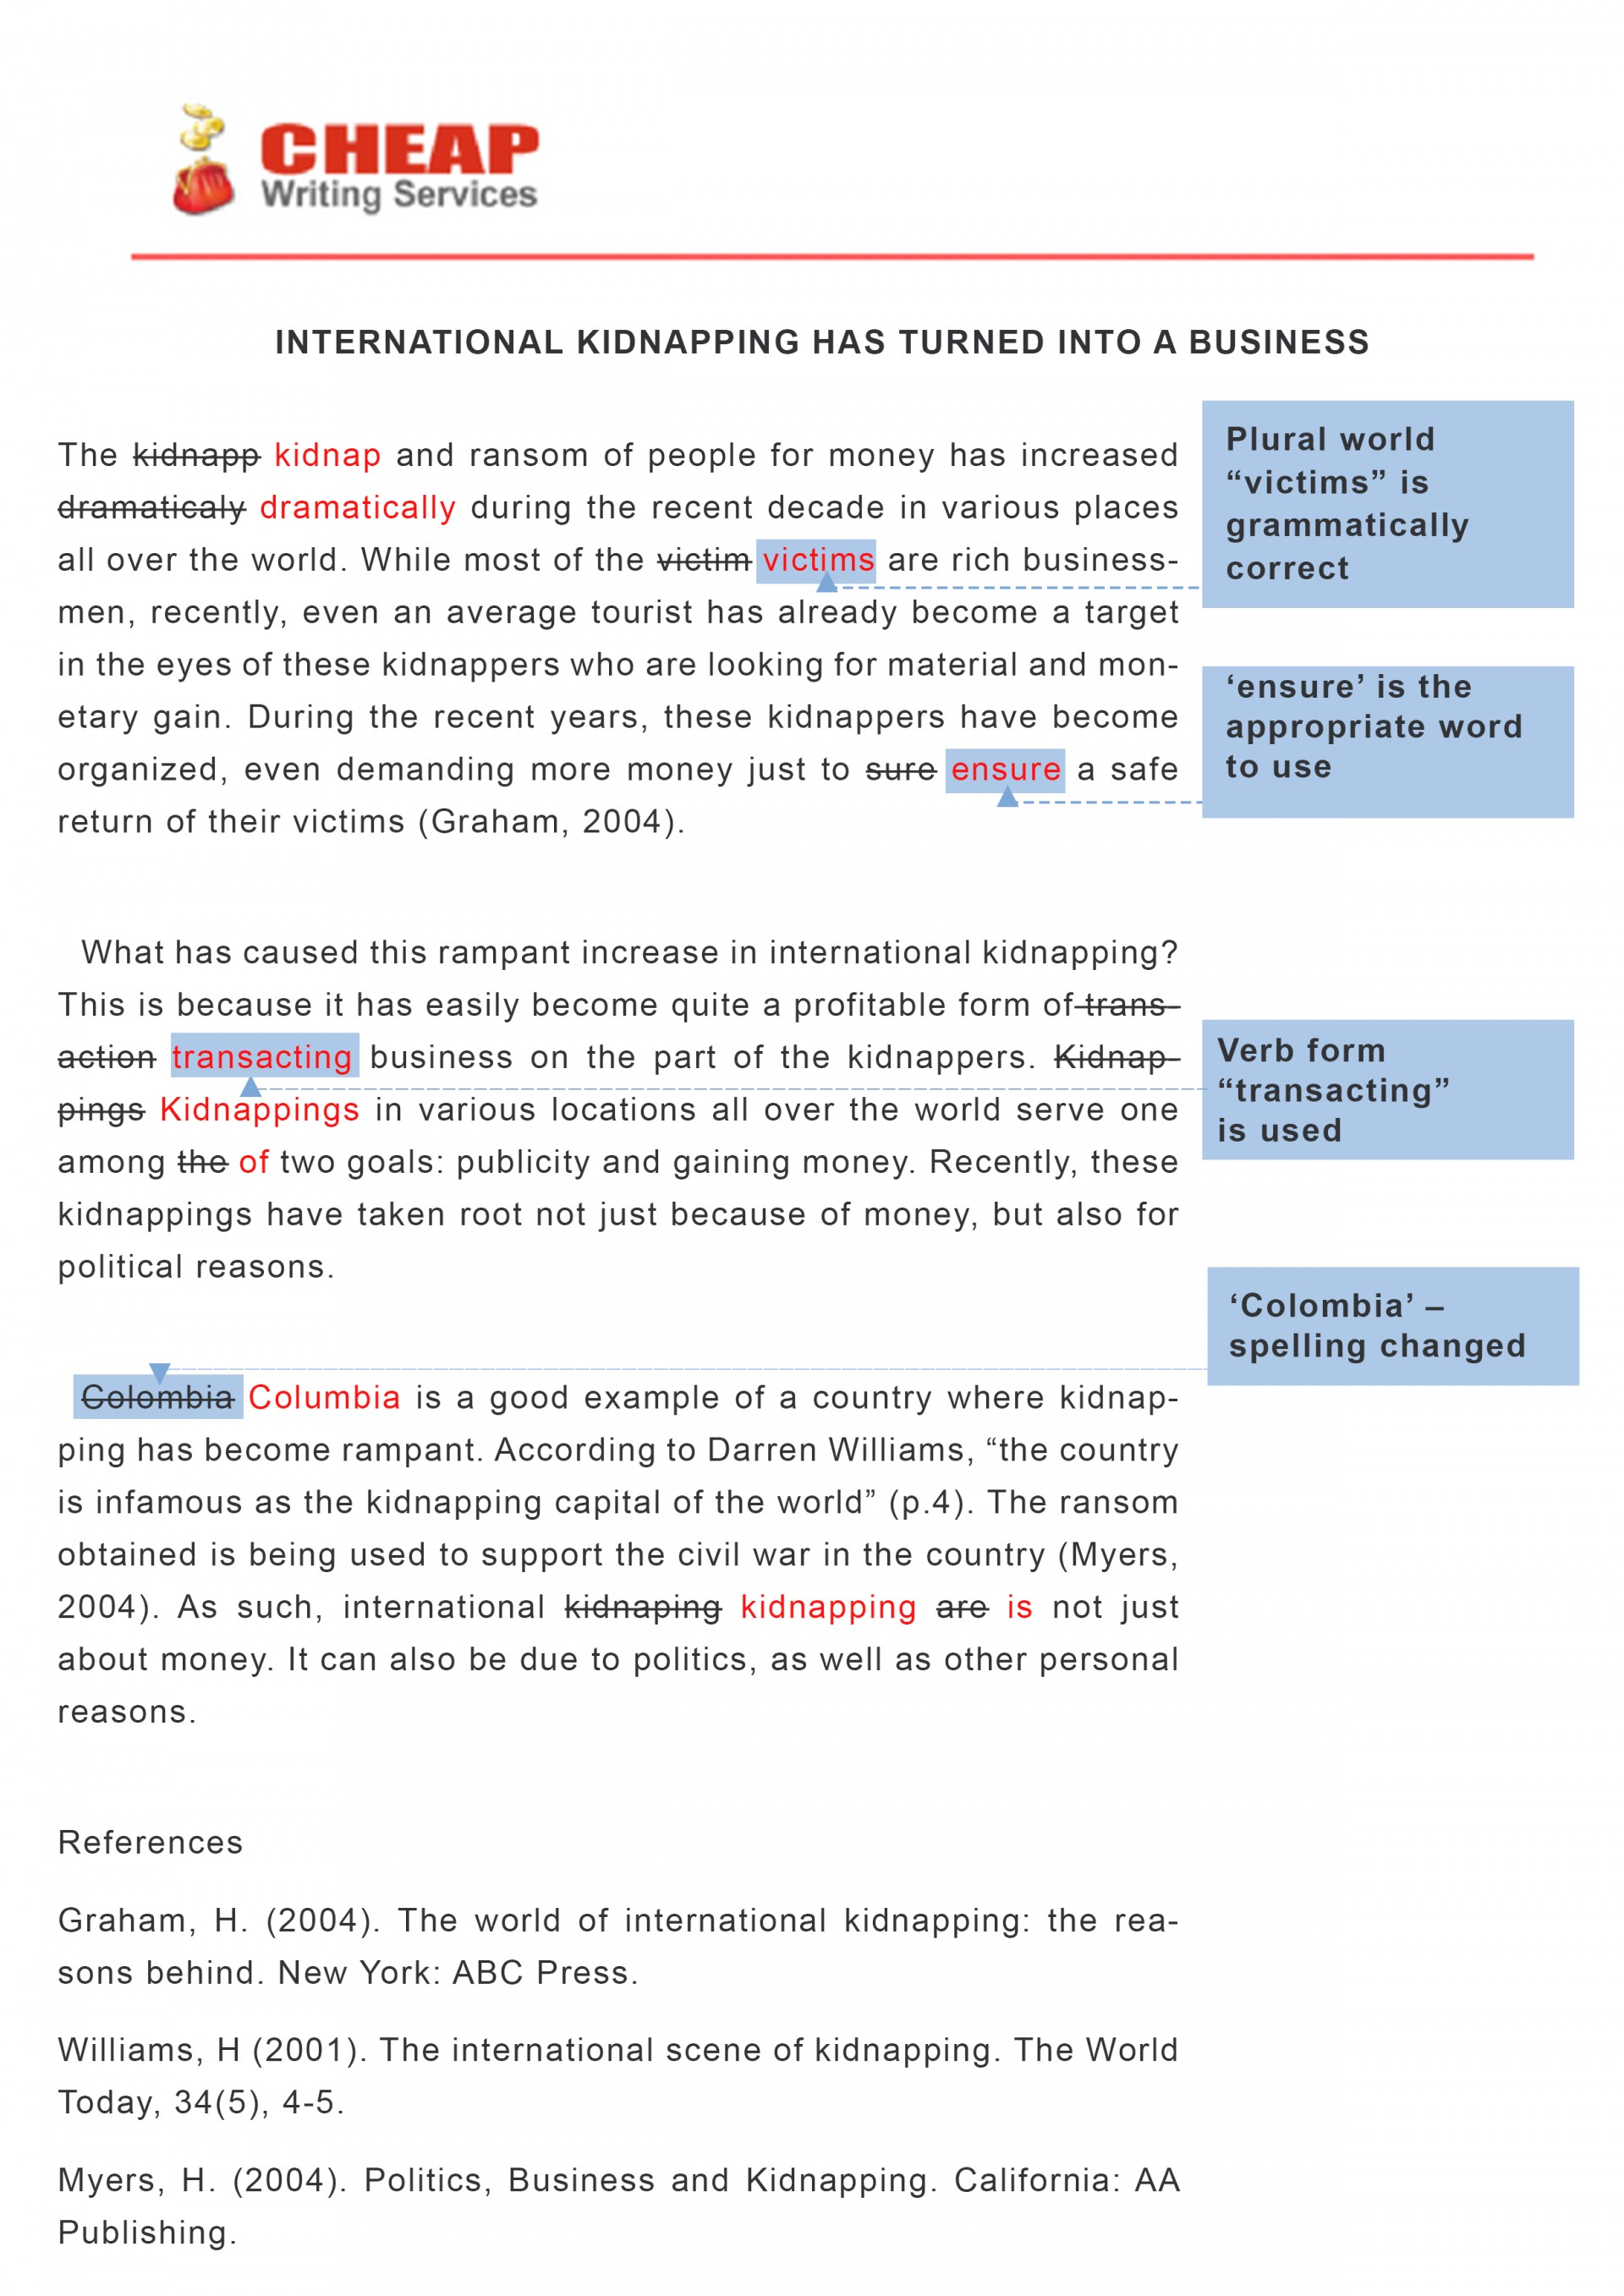 006 Essay Proofreading Example Free Online Rare Editor Software Ielts Correction 1920